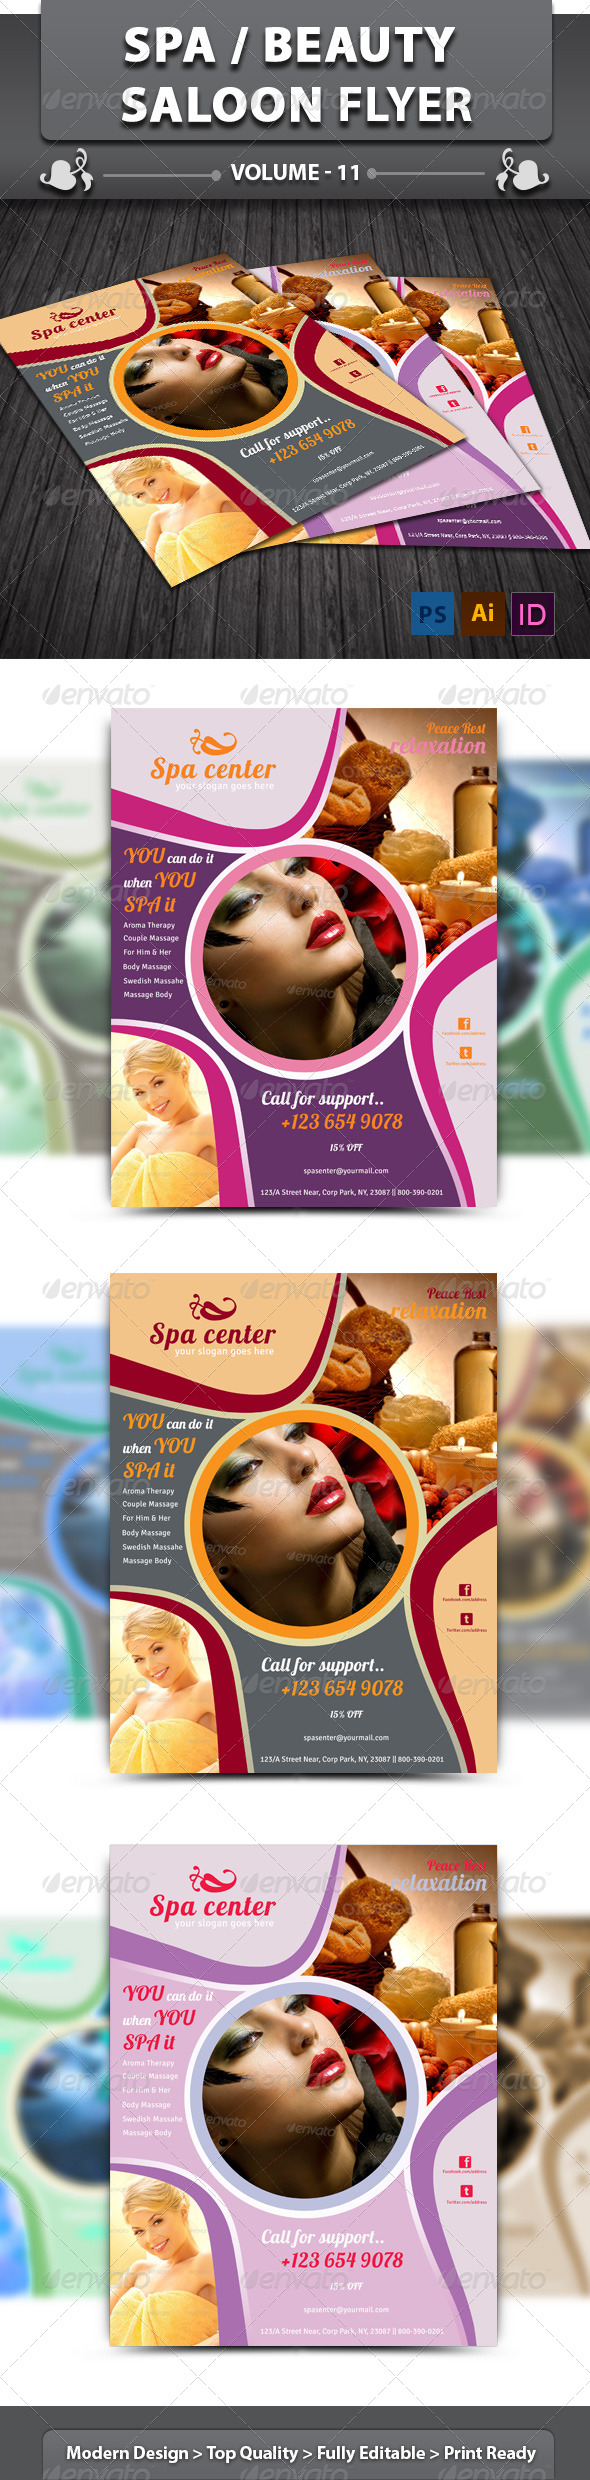 Spa & Beauty Saloon Flyer | Volume 7 - Corporate Flyers